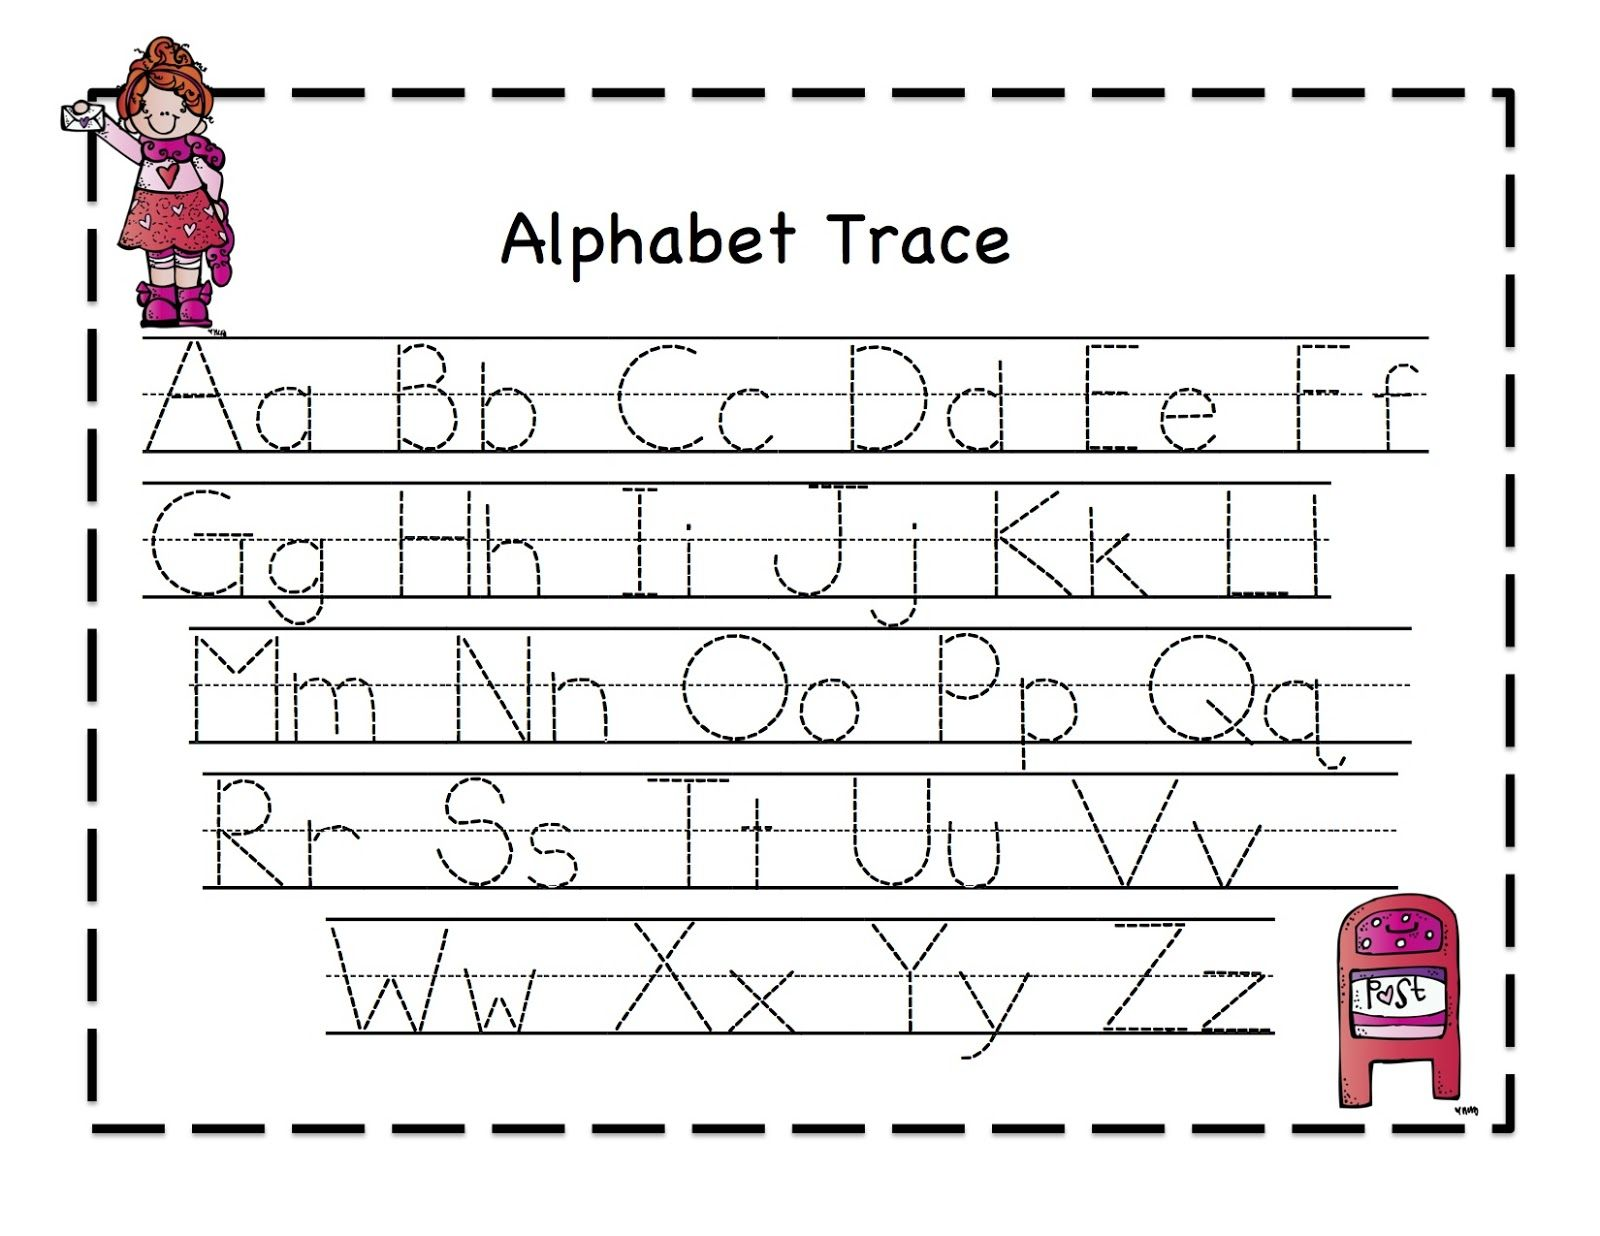 Worksheets Tracing The Alphabet Worksheets For Kindergarten abc tracing sheets for preschool kids kiddo shelter alphabet shelter